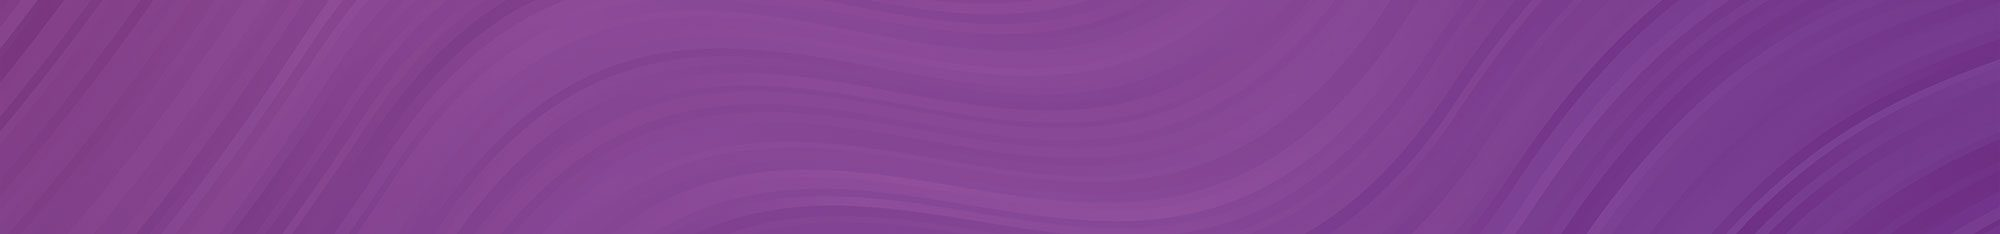 Purple Wavy Pattern